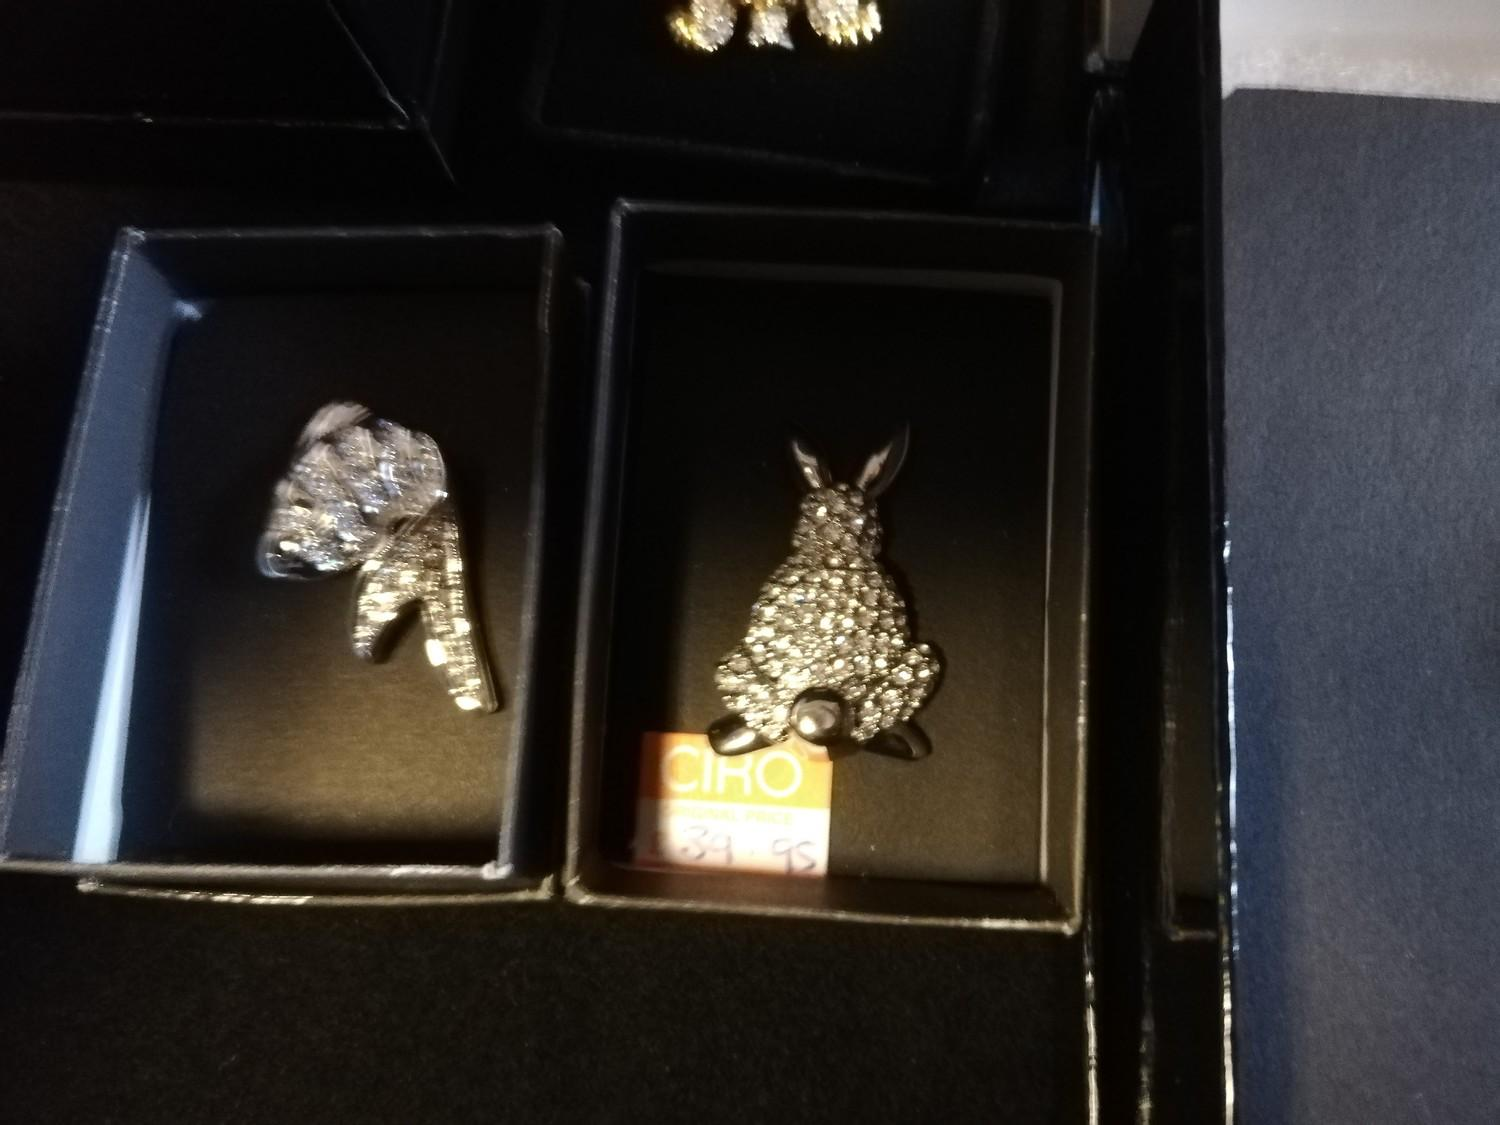 Collection of Ciro brooches inc pig, beehive with bees, cow, birds & turtle + 2 empty bags - Image 8 of 11